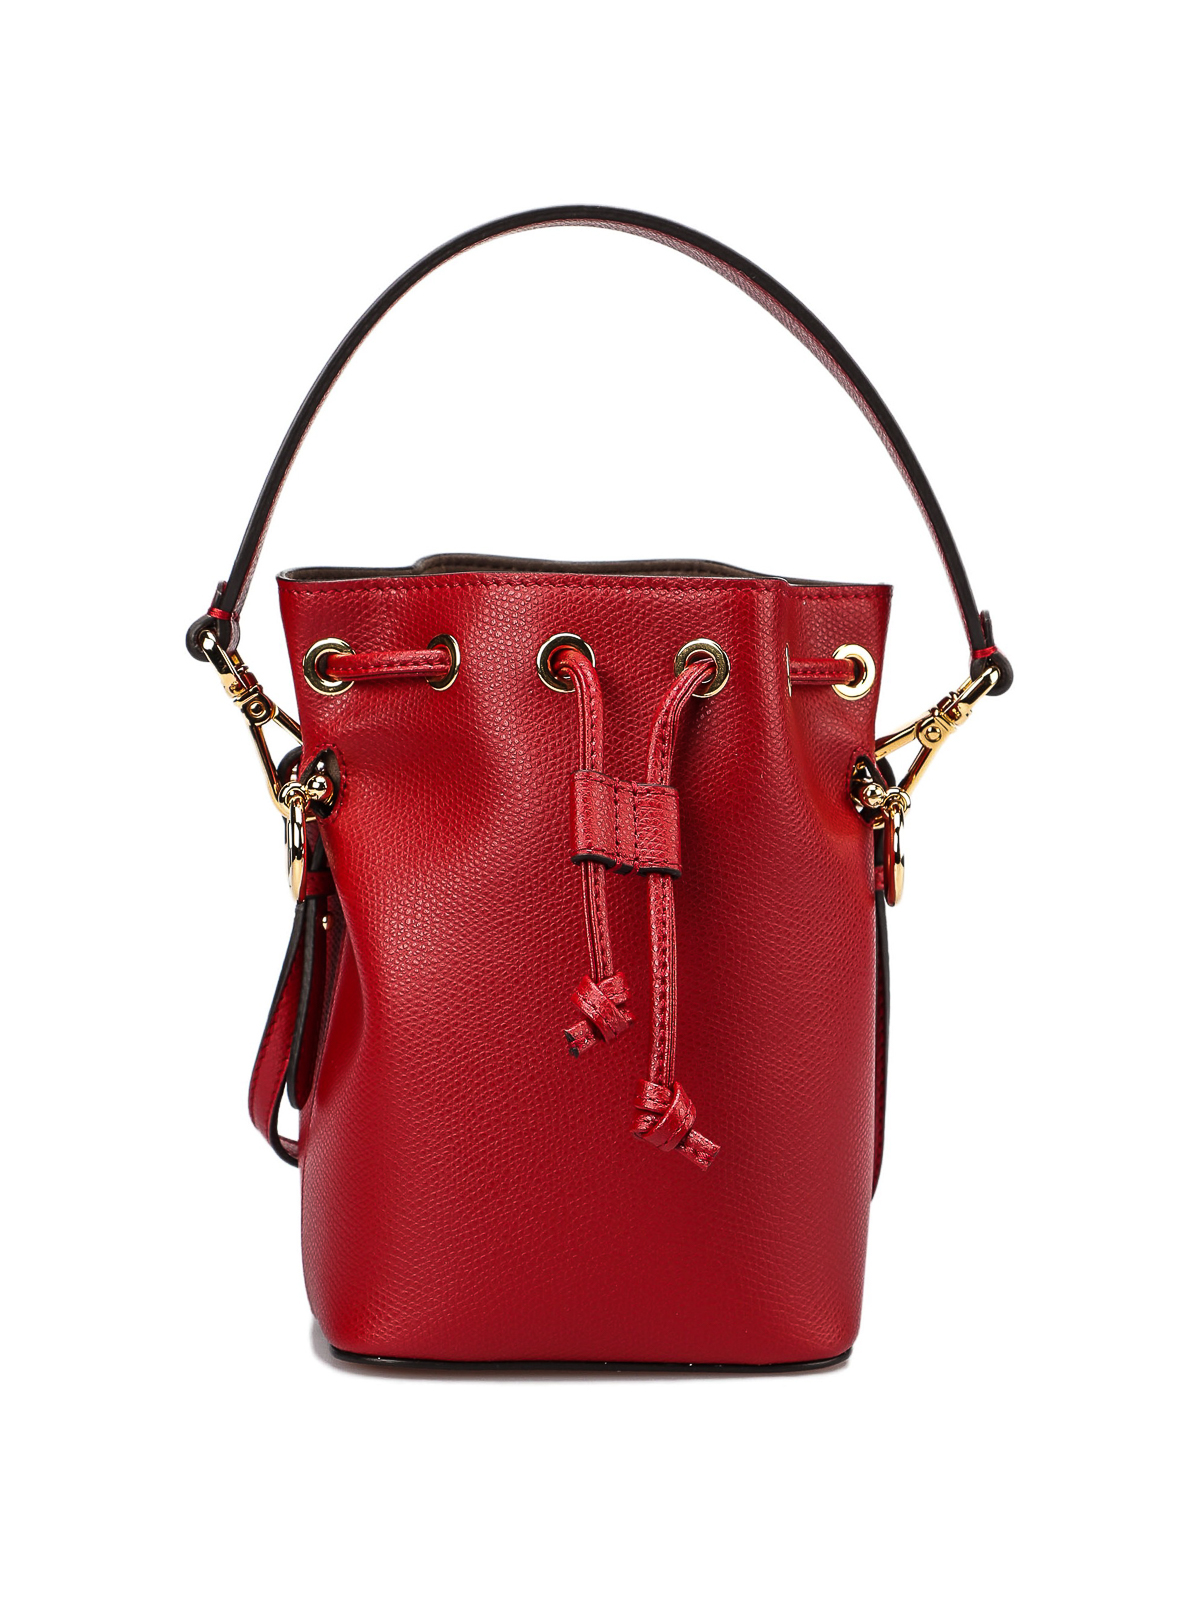 Fendi - Mon Tresor Mini red bucket bag - Bucket bags - 8BS010A18B MVV 2e2a1982c0217